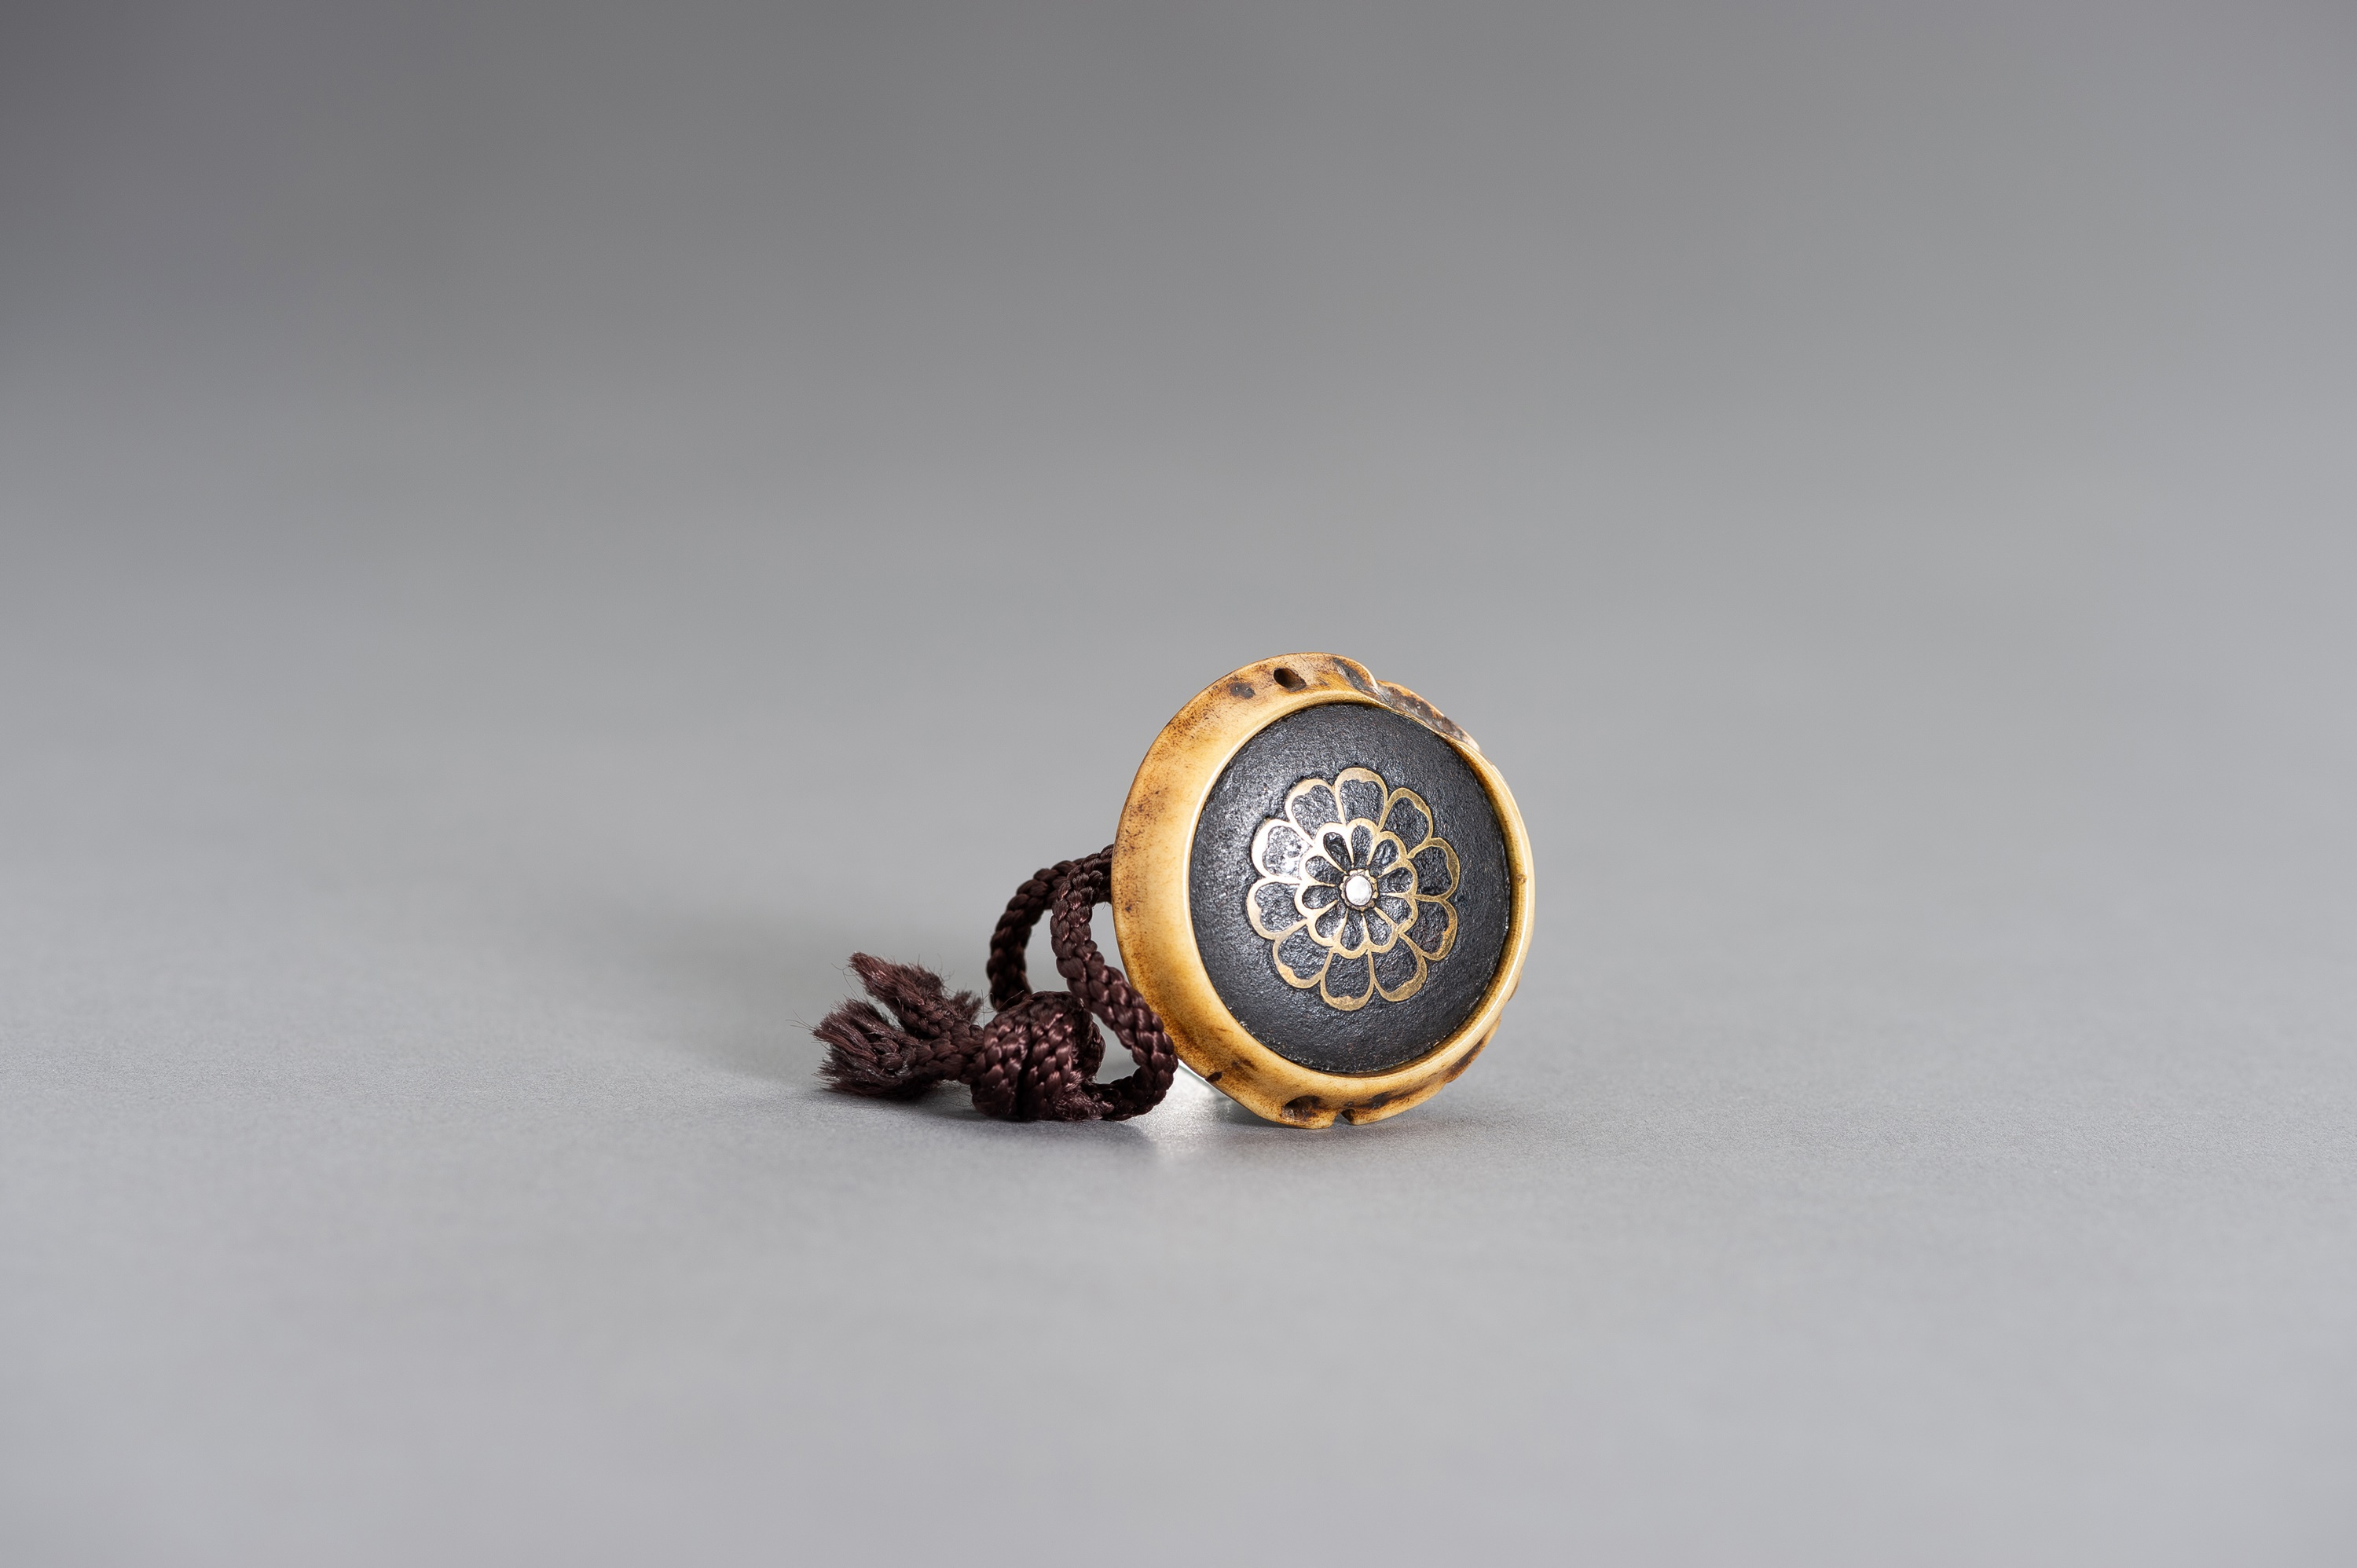 AN UNUSUAL STAG-ANTLER KAGAMIBUTA NETSUKE WITH AN IRON LID - Image 3 of 3